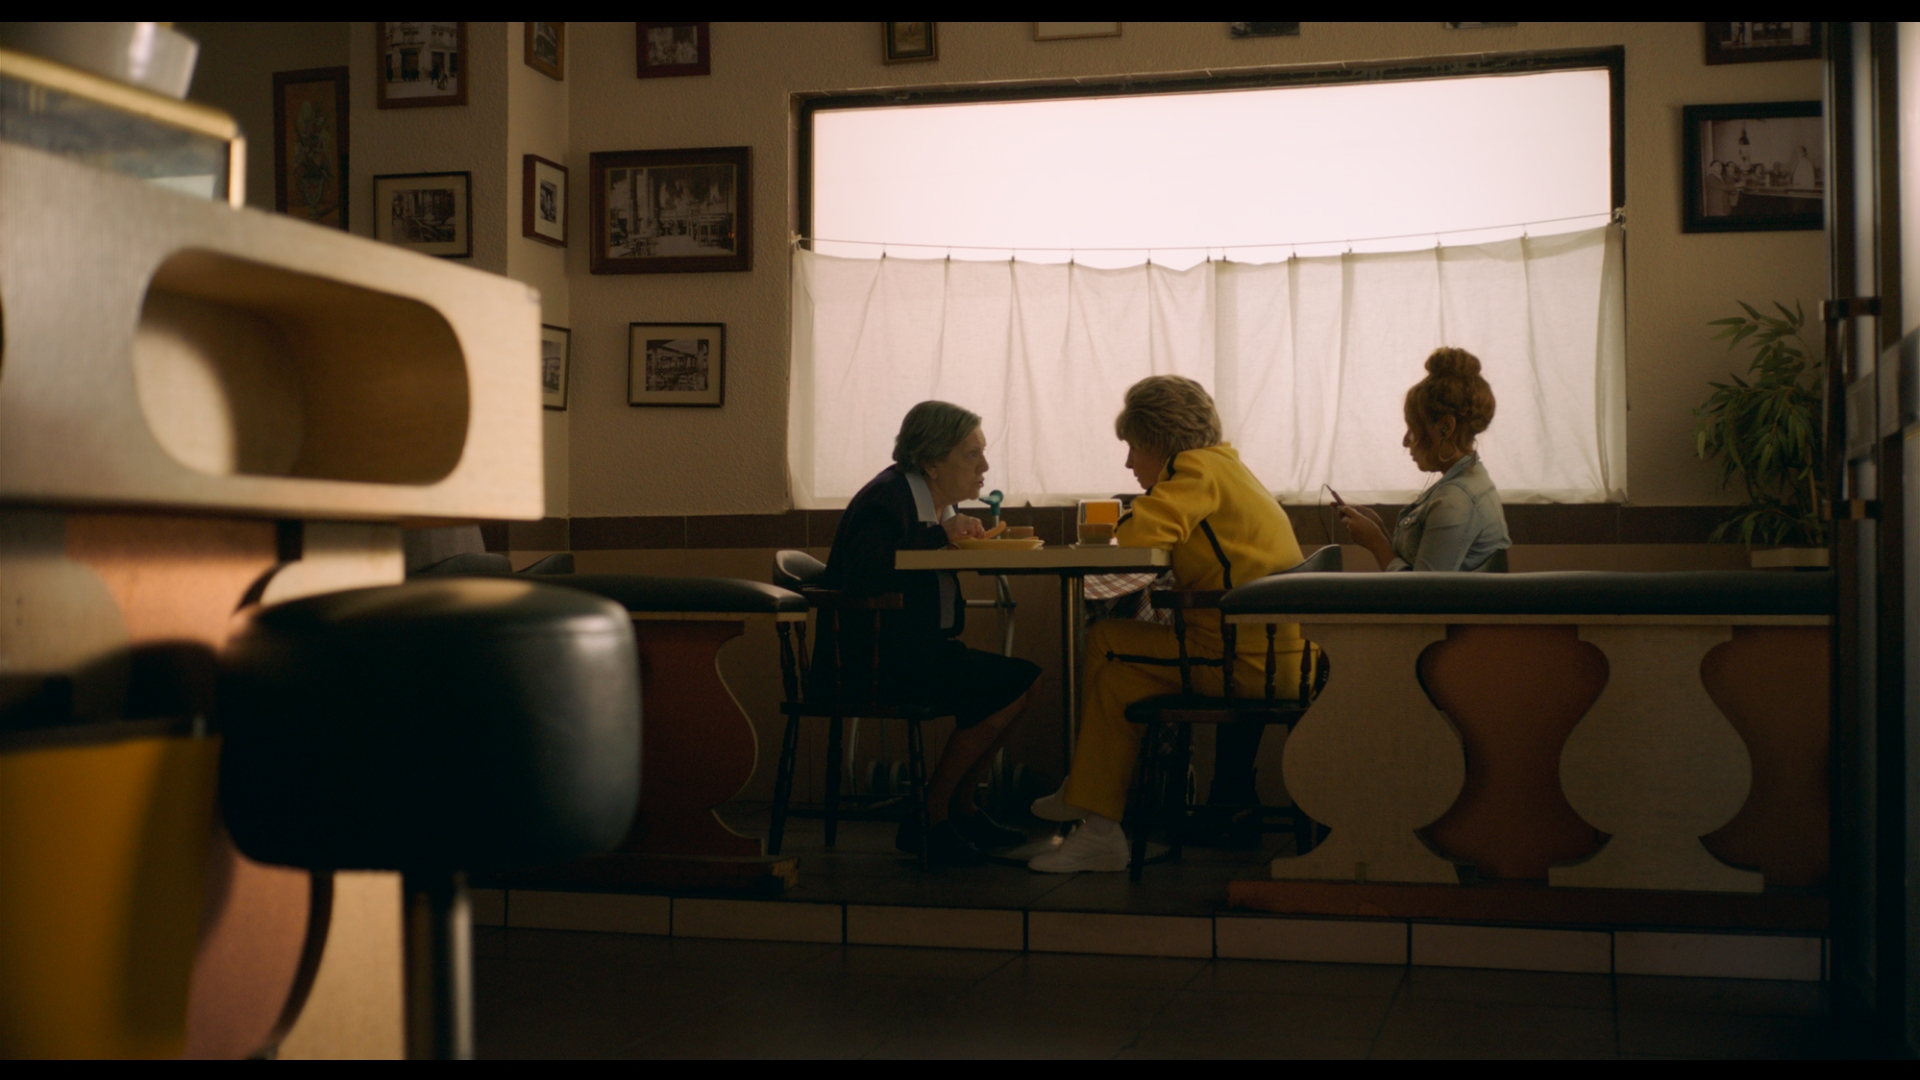 Not even a line - Victor SomozaSynopsis: As they do every afternoon Encarna and Rosario meet up to have churros for afternoon snack in their neighbourhood café. However, today is a special day. Today they'll be changing their usual conversation topics.RT: 17:002017, Spain / Maine + New England Premiere